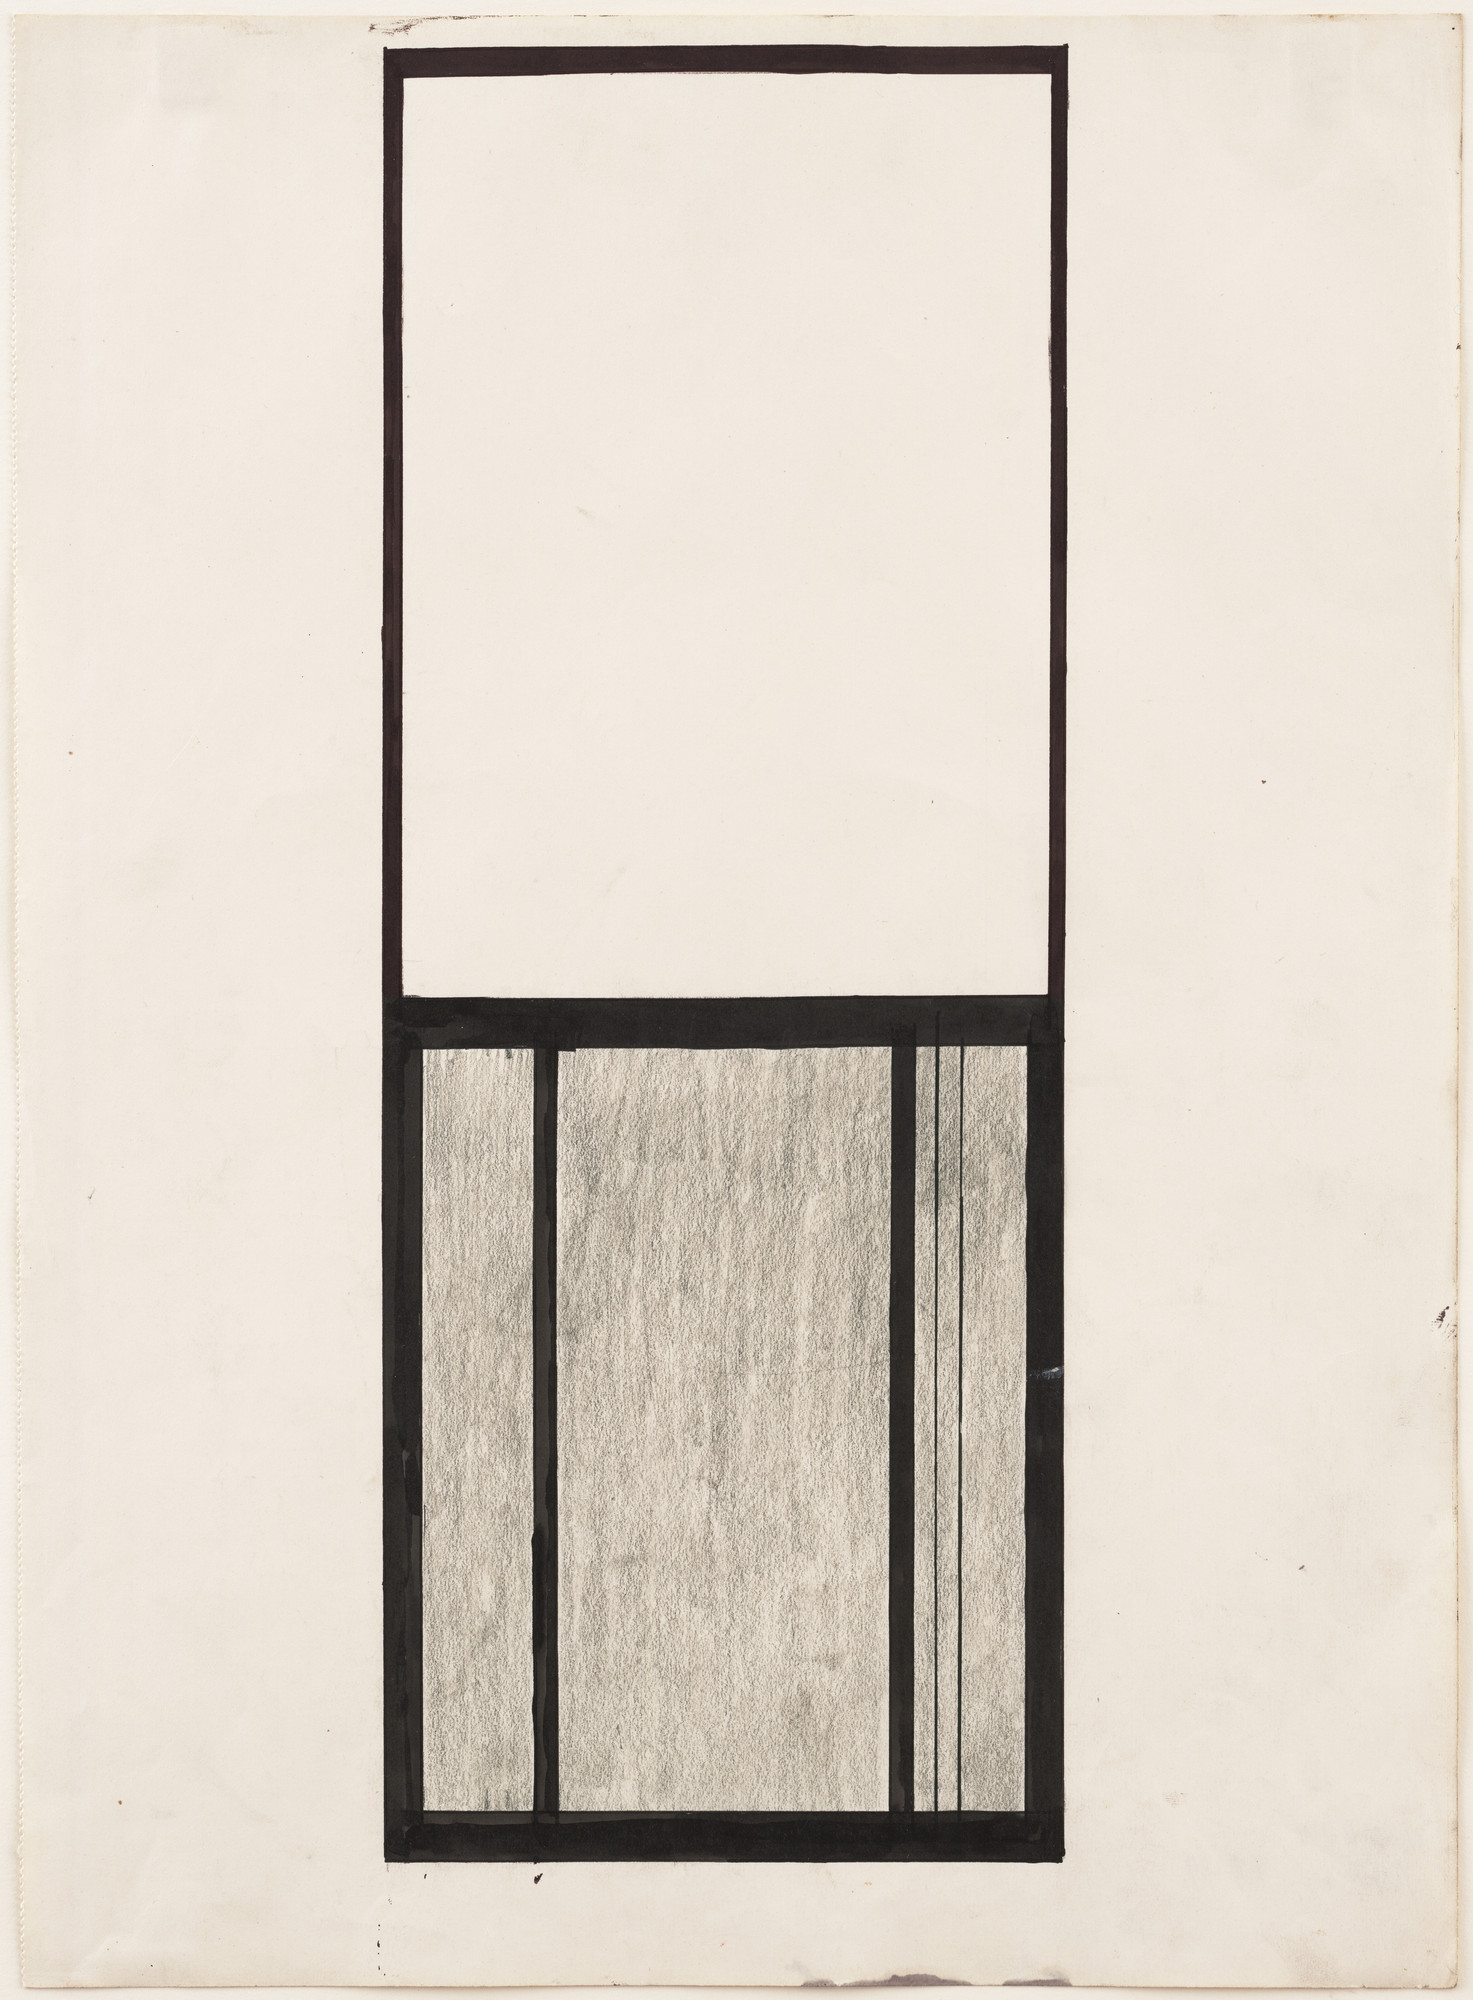 Ellsworth Kelly. Study for Window, Museum of Modern Art, Paris. 1949